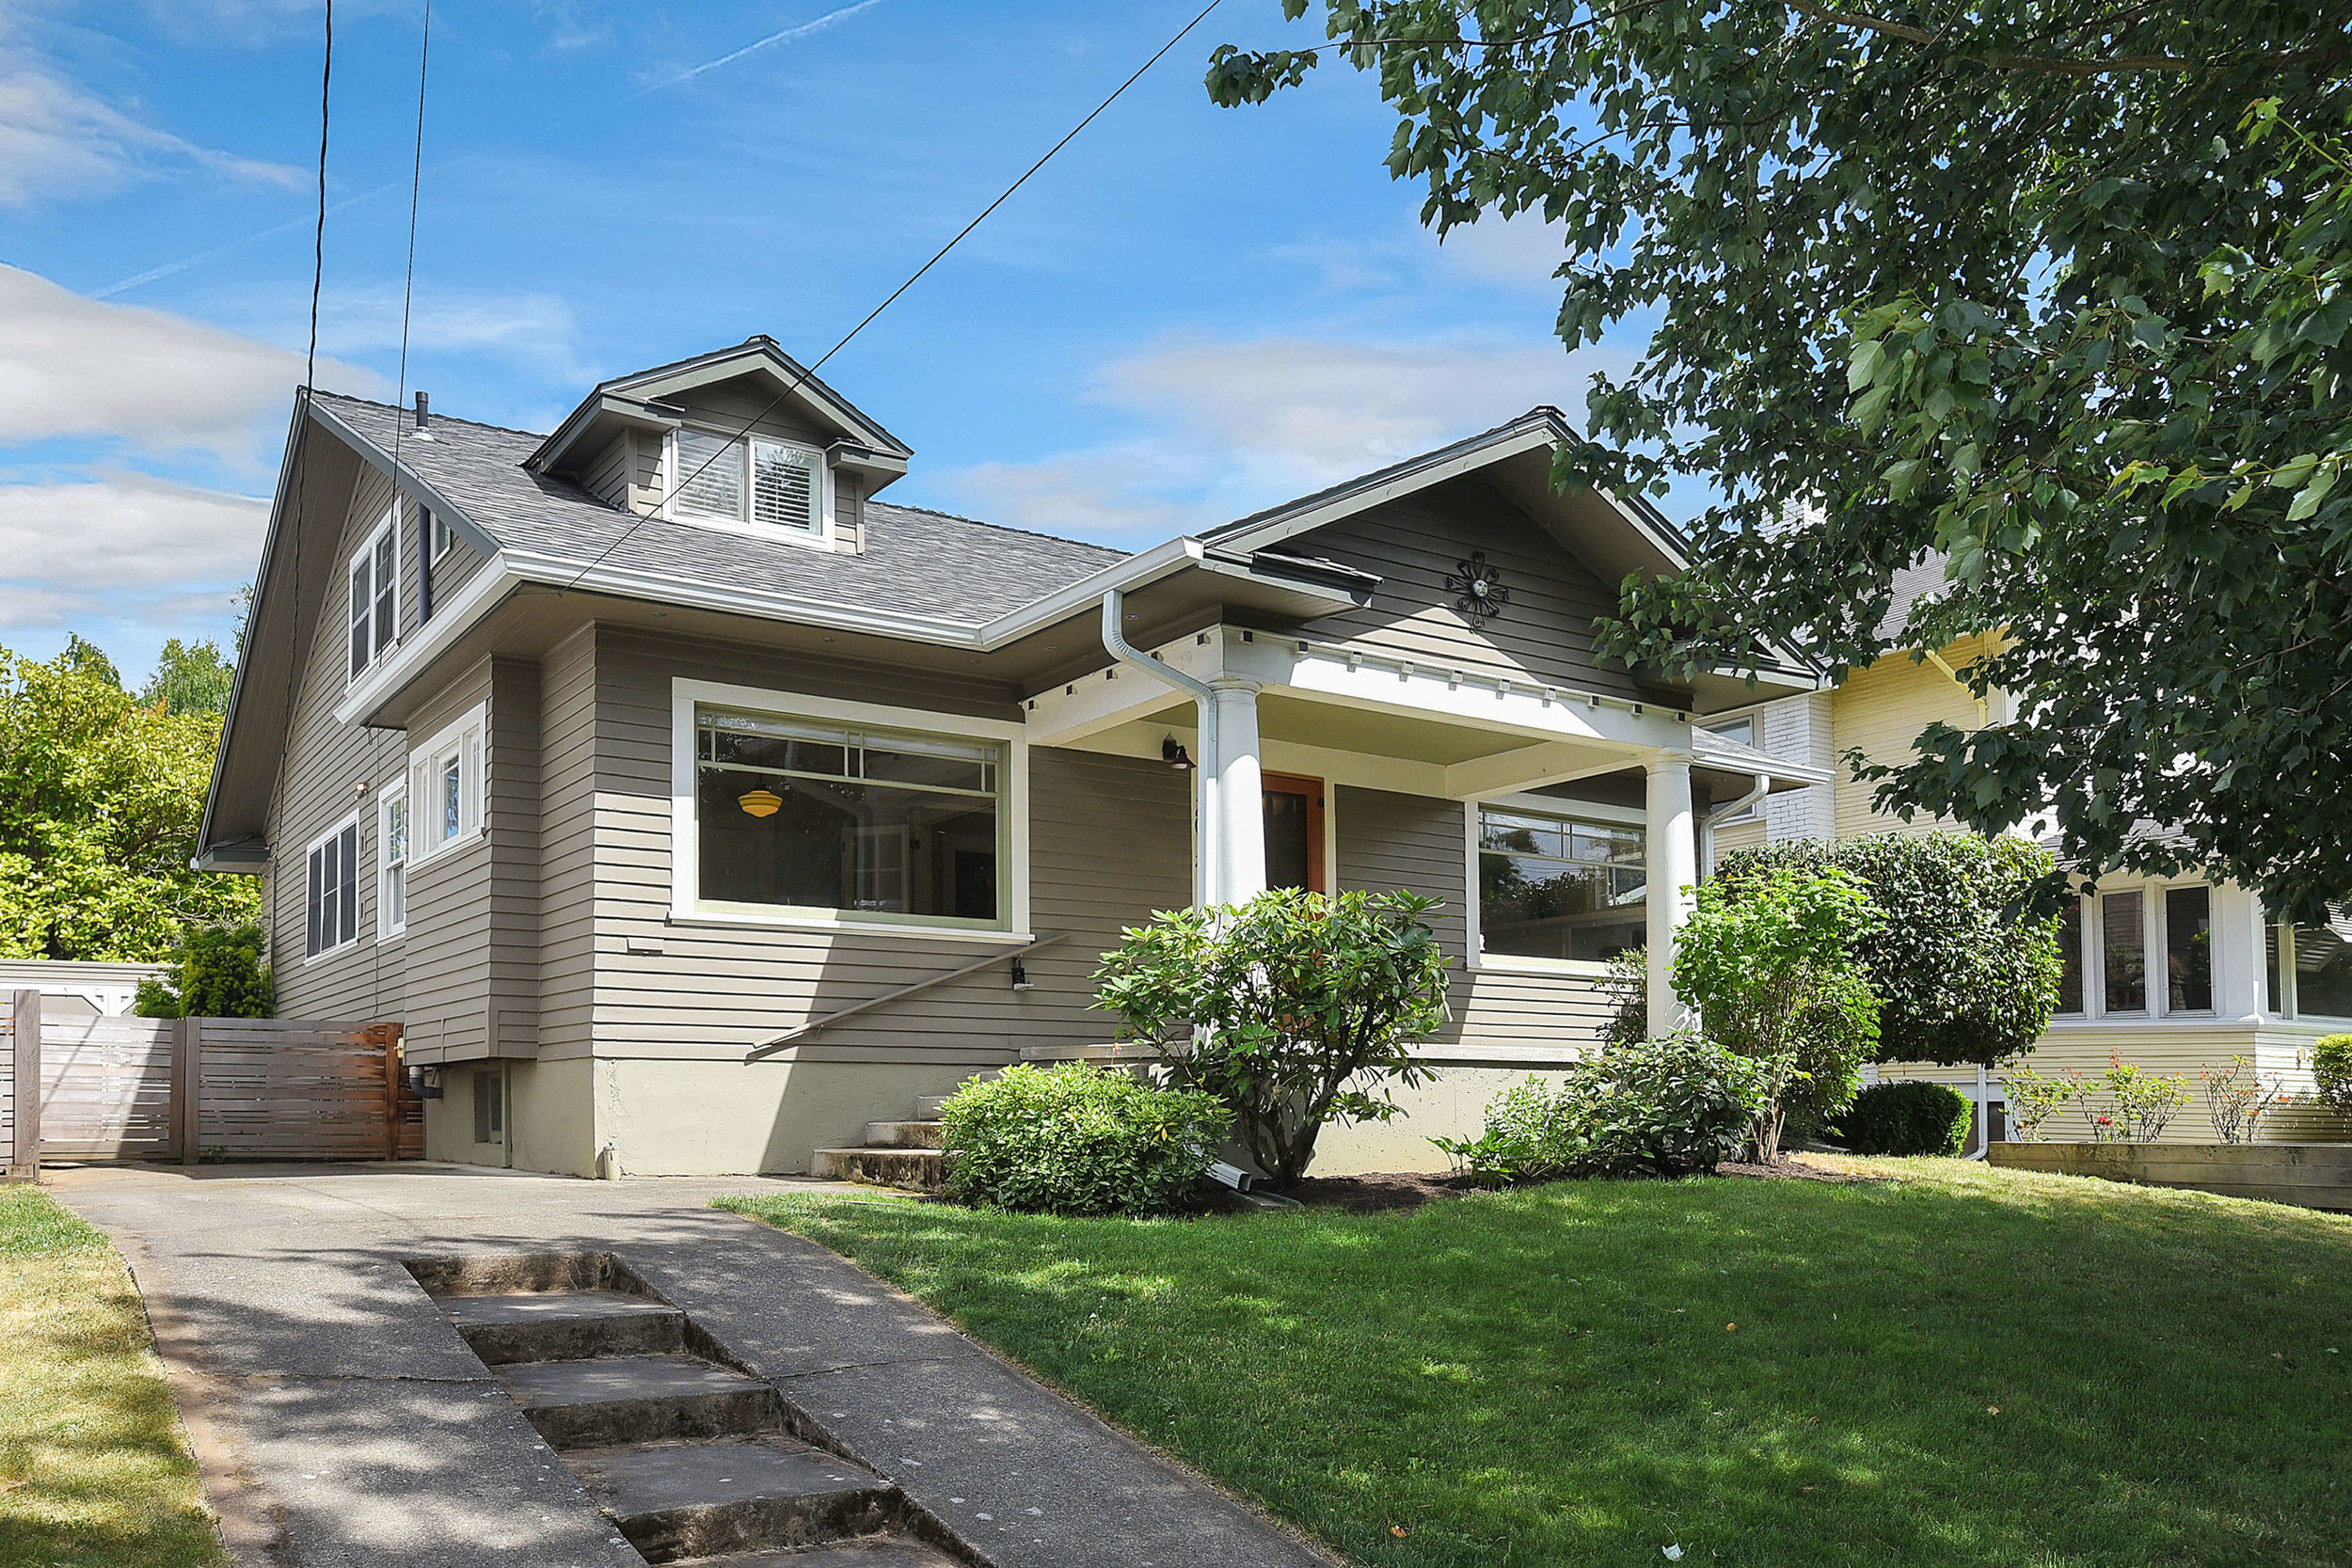 2014 NE 48th Ave. <strong>SOLD</strong>